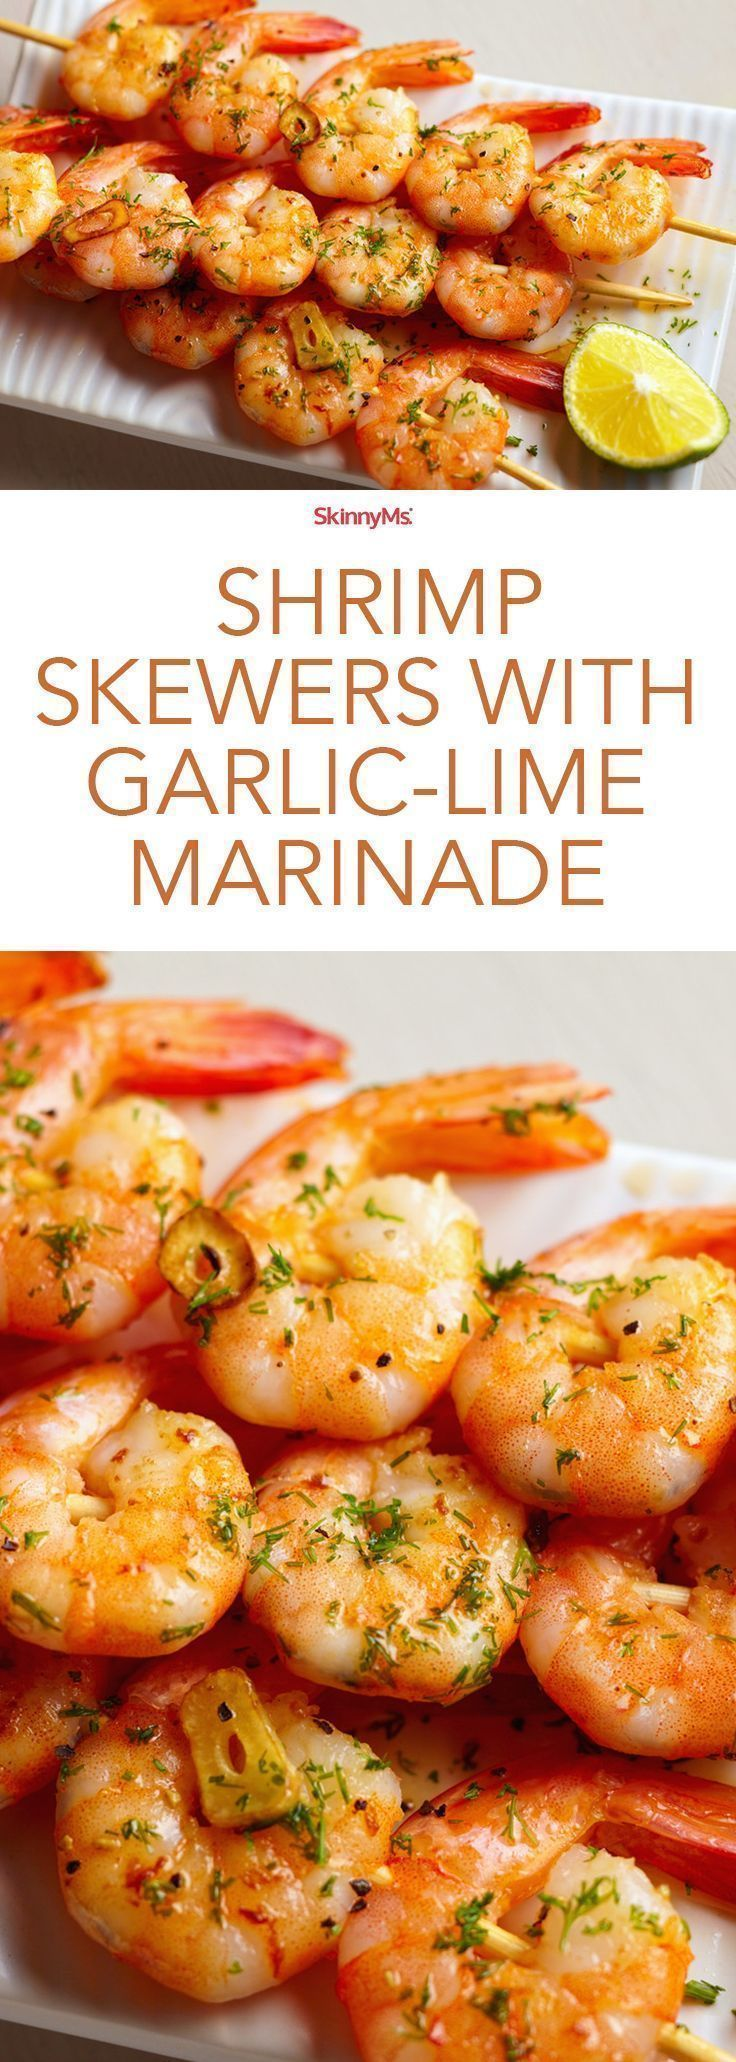 with Garlic-Lime Marinade Shrimp Skewers with Garlic-Lime Marinade - Juicy, succulent perfection!Shrimp Skewers with Garlic-Lime Marinade - Juicy, succulent perfection!Skewers with Garlic-Lime Marinade Shrimp Skewers with Garlic-Lime Marinade - Juicy, succulent perfection!Shrimp Skewers with Garlic-Lime Marinade - Juicy, succulent perfection!